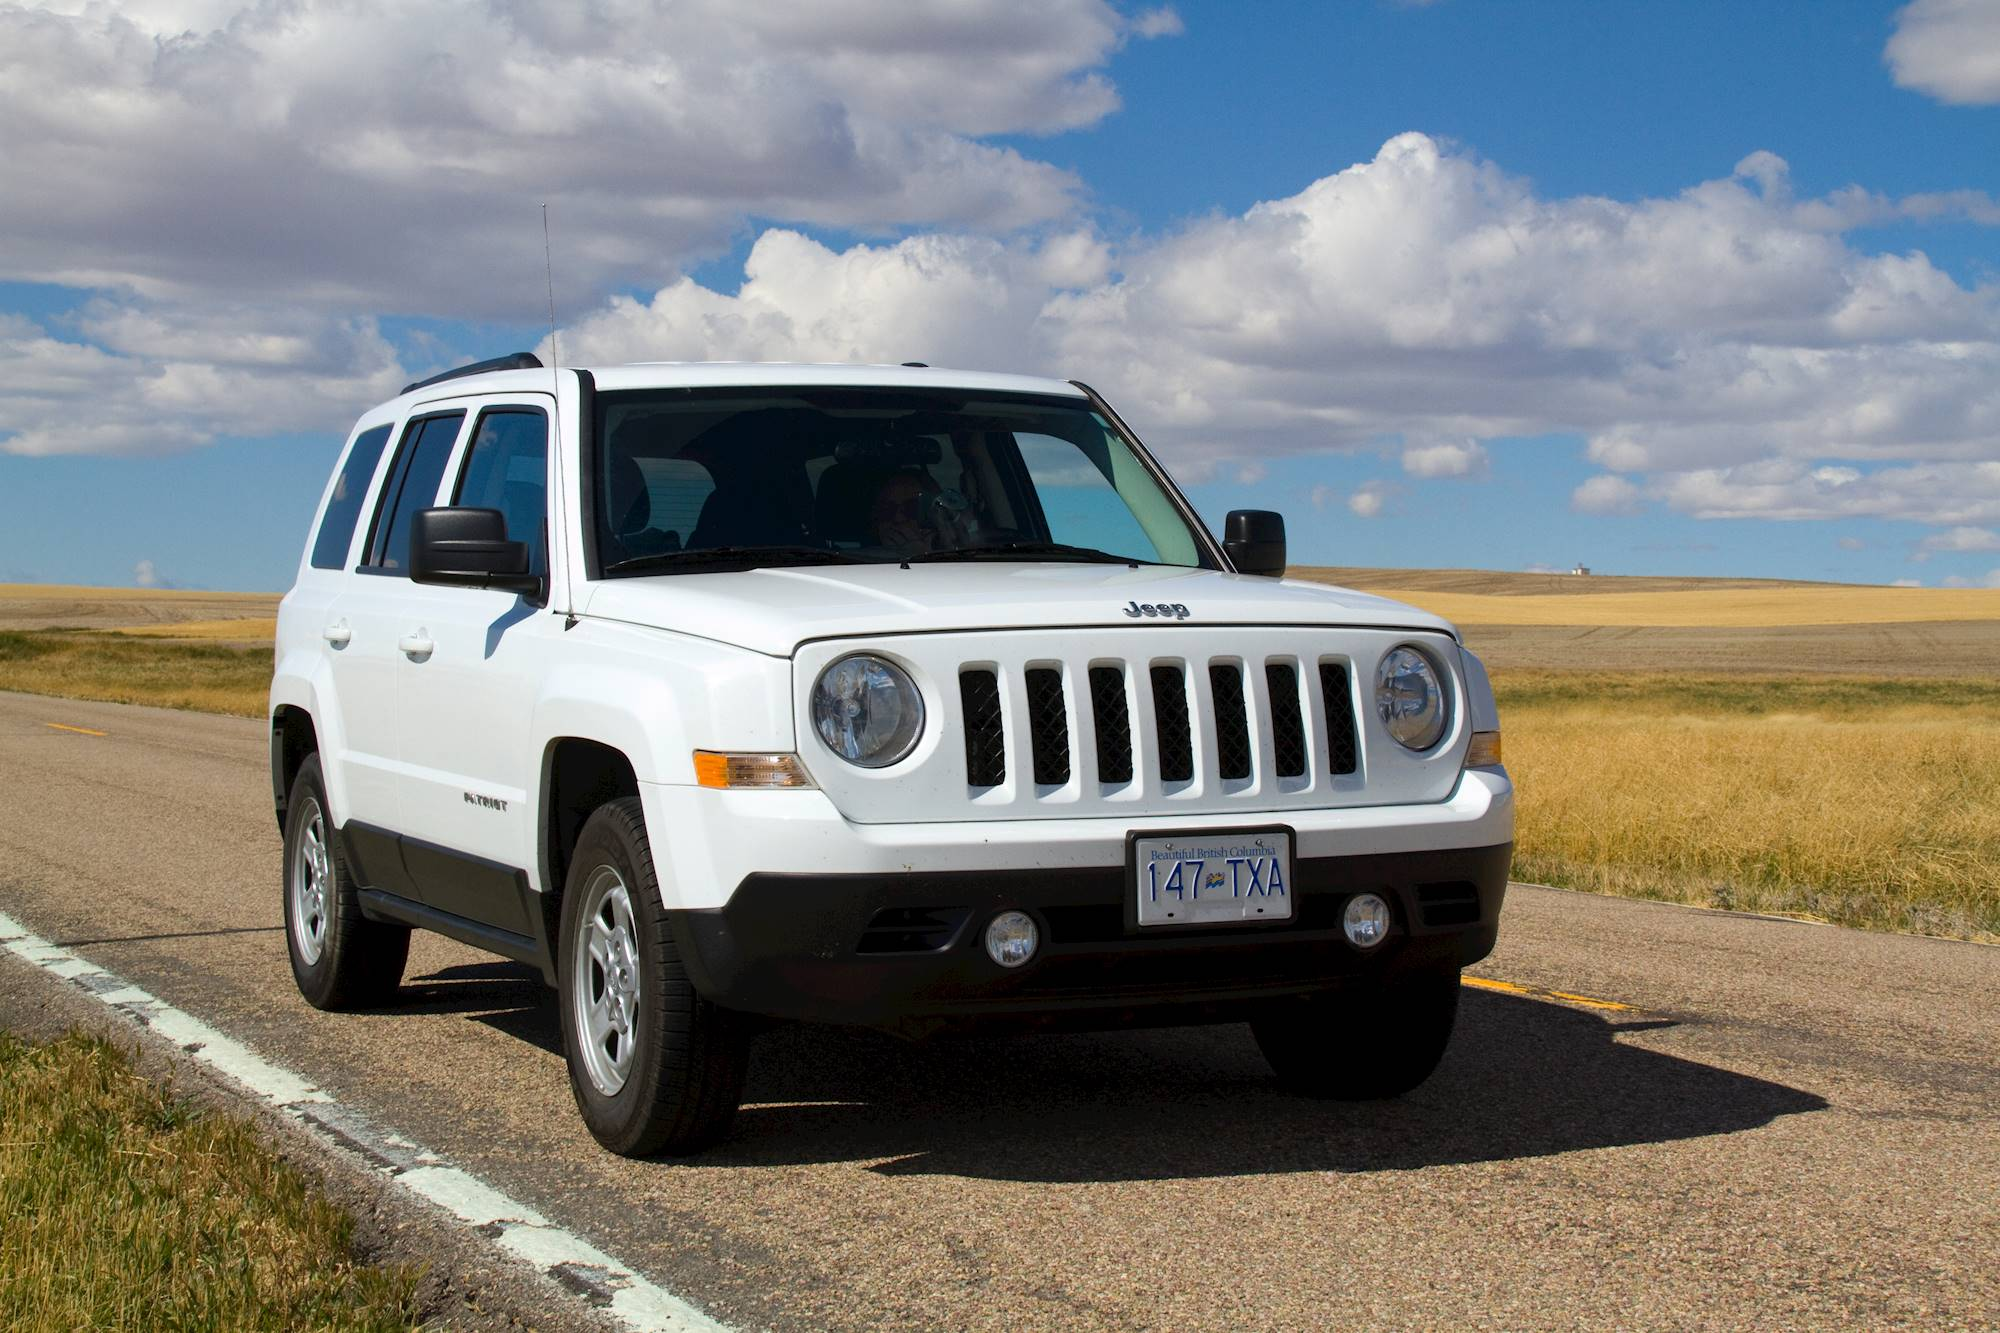 2017 jeep patriot recalls and problems - HD 2000×1333